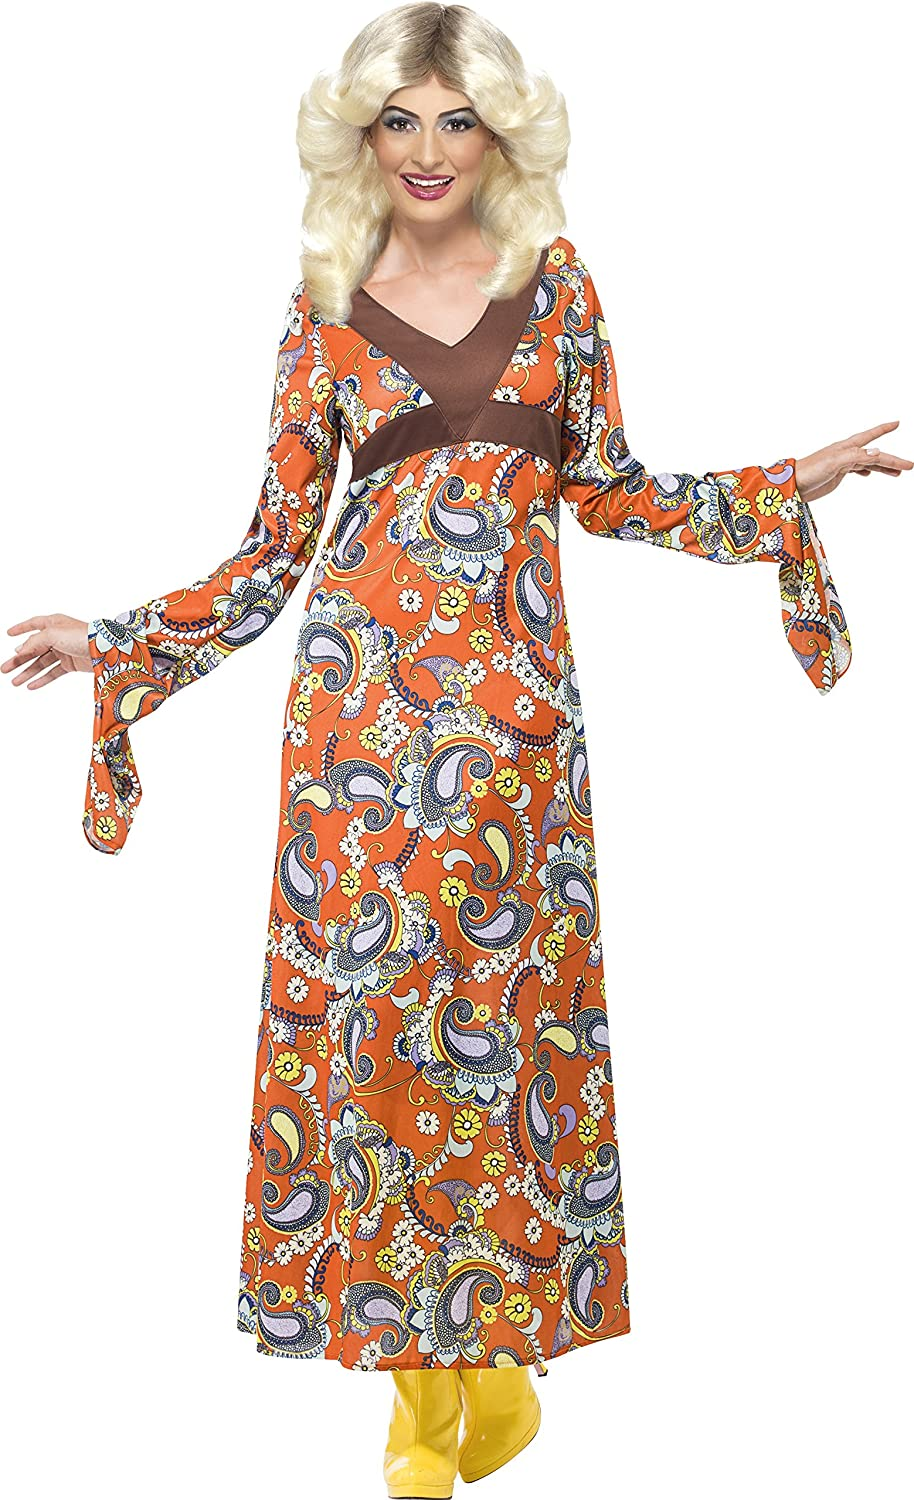 70s Costumes: Disco Costumes, Hippie Outfits Smiffys Womens Woodstock Maxi Dress Costume  AT vintagedancer.com